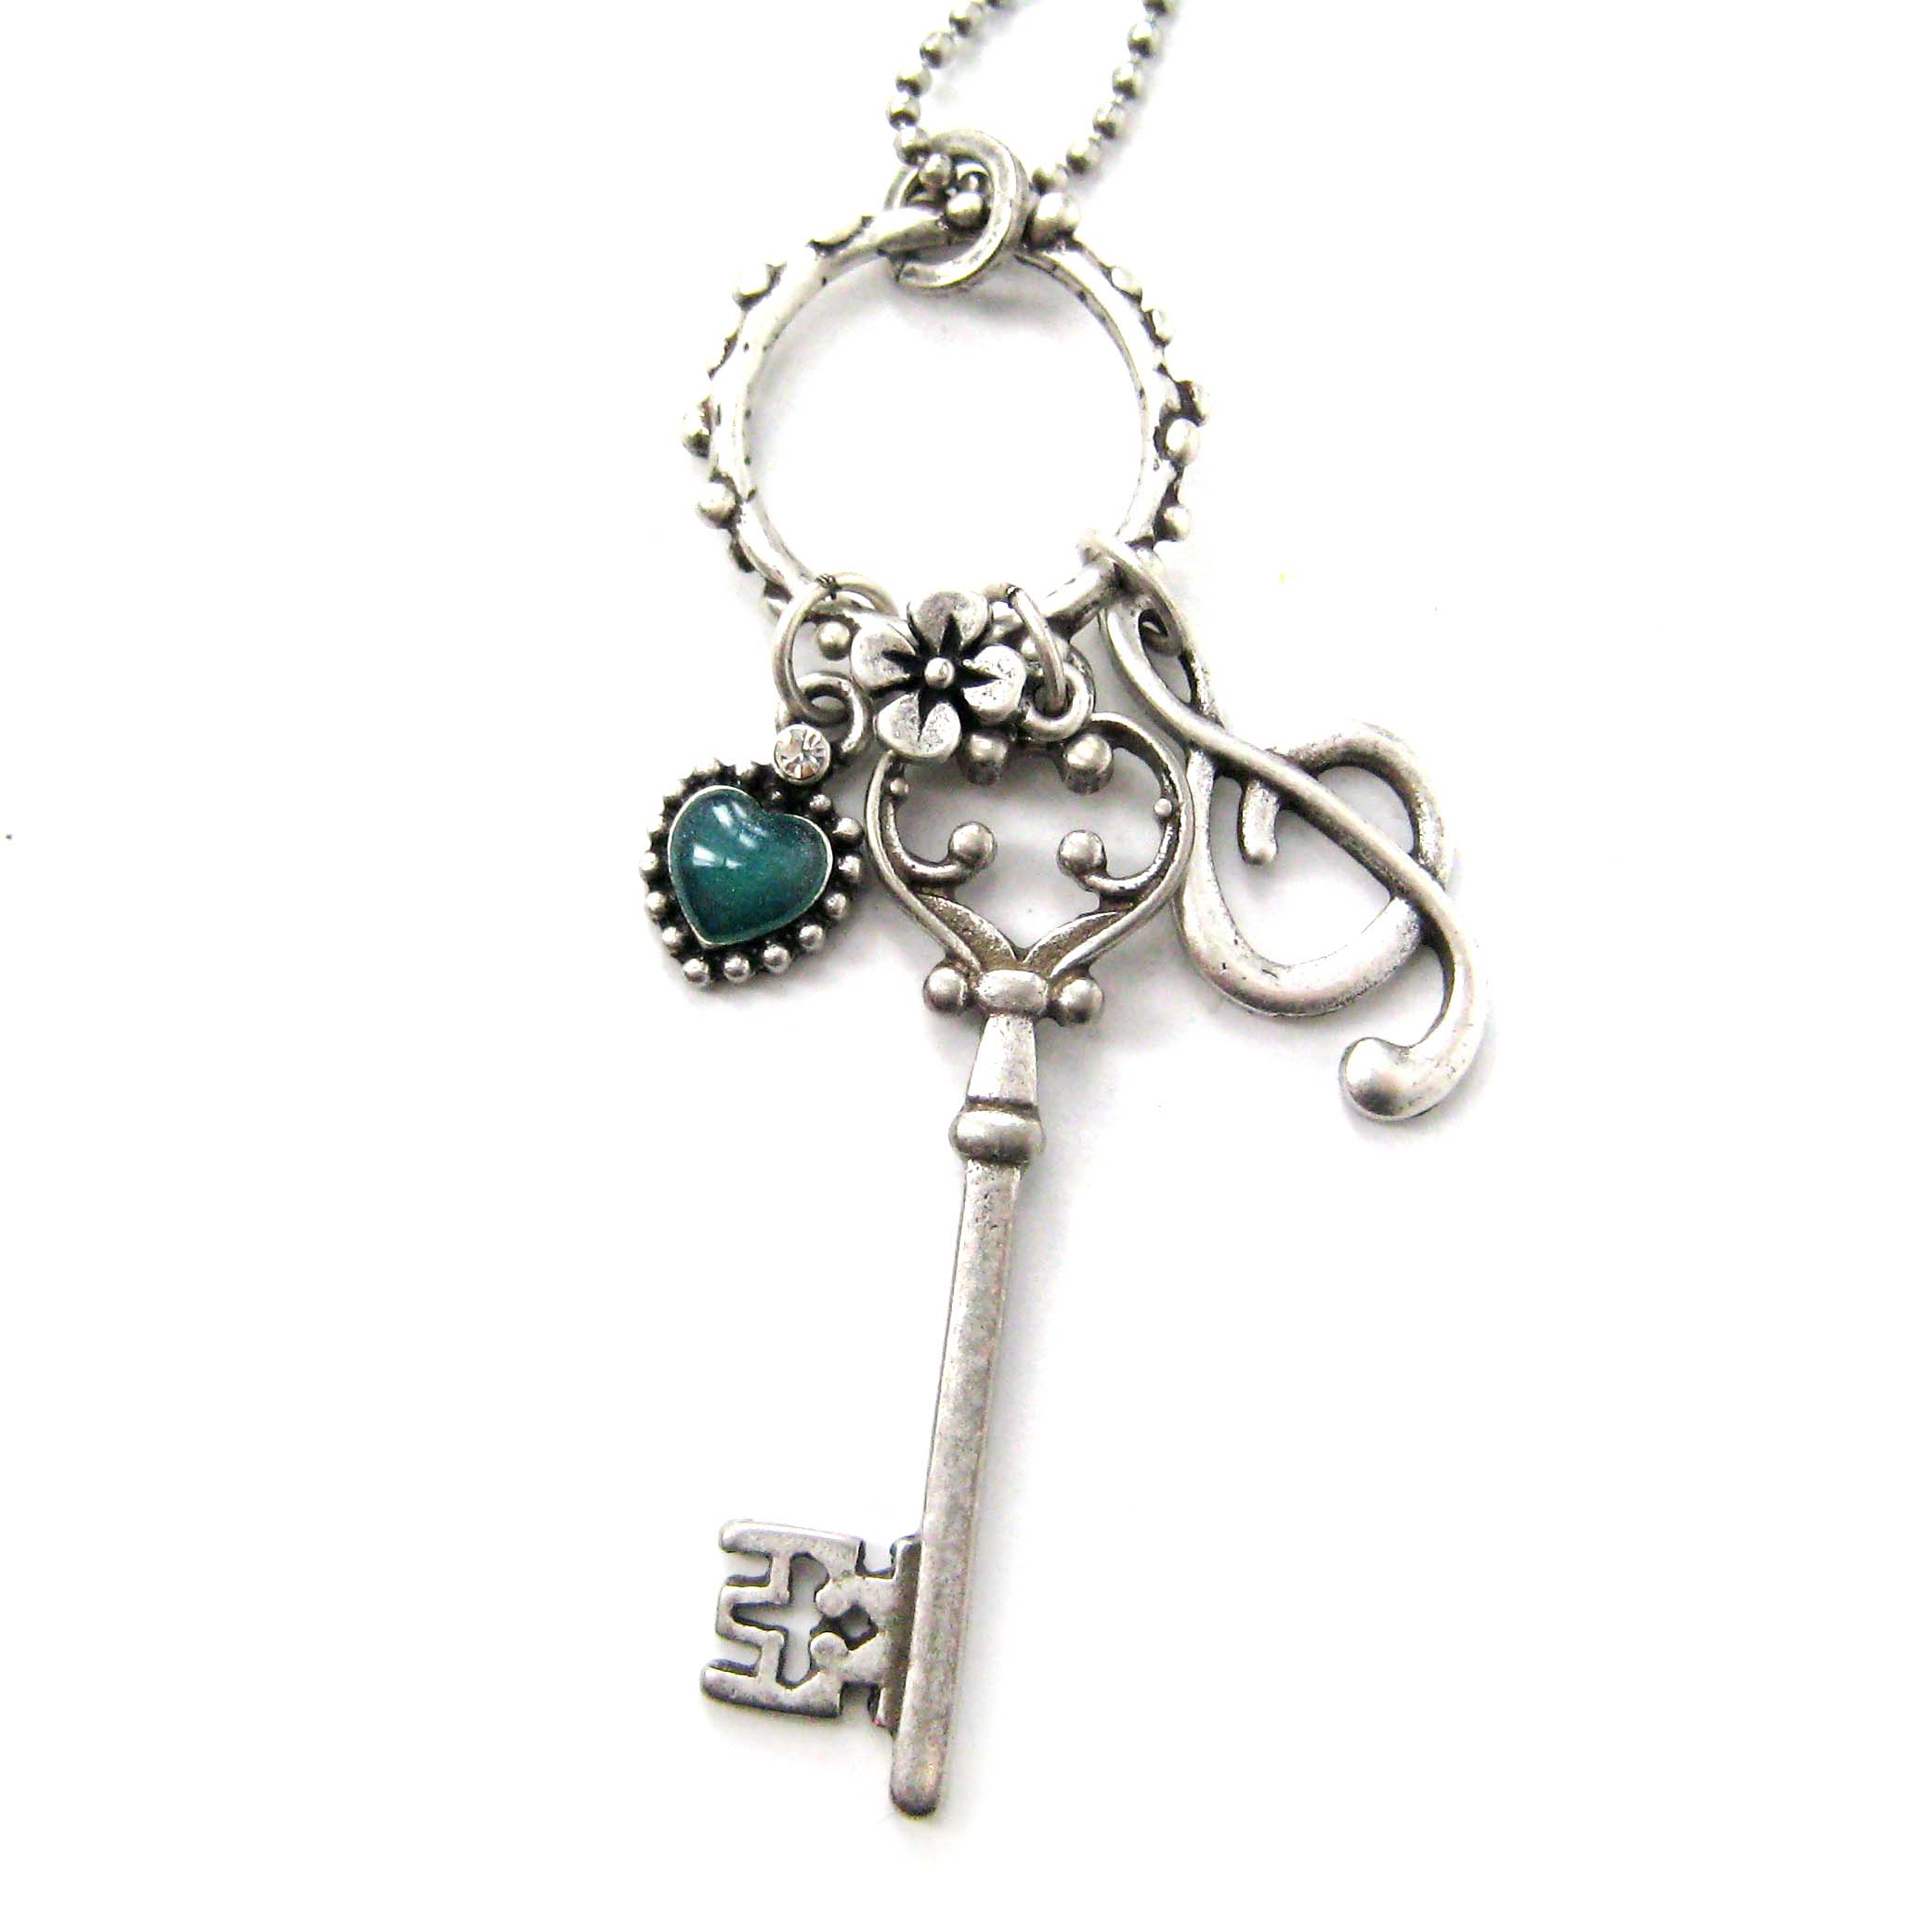 skeleton key and treble clef themed necklace in